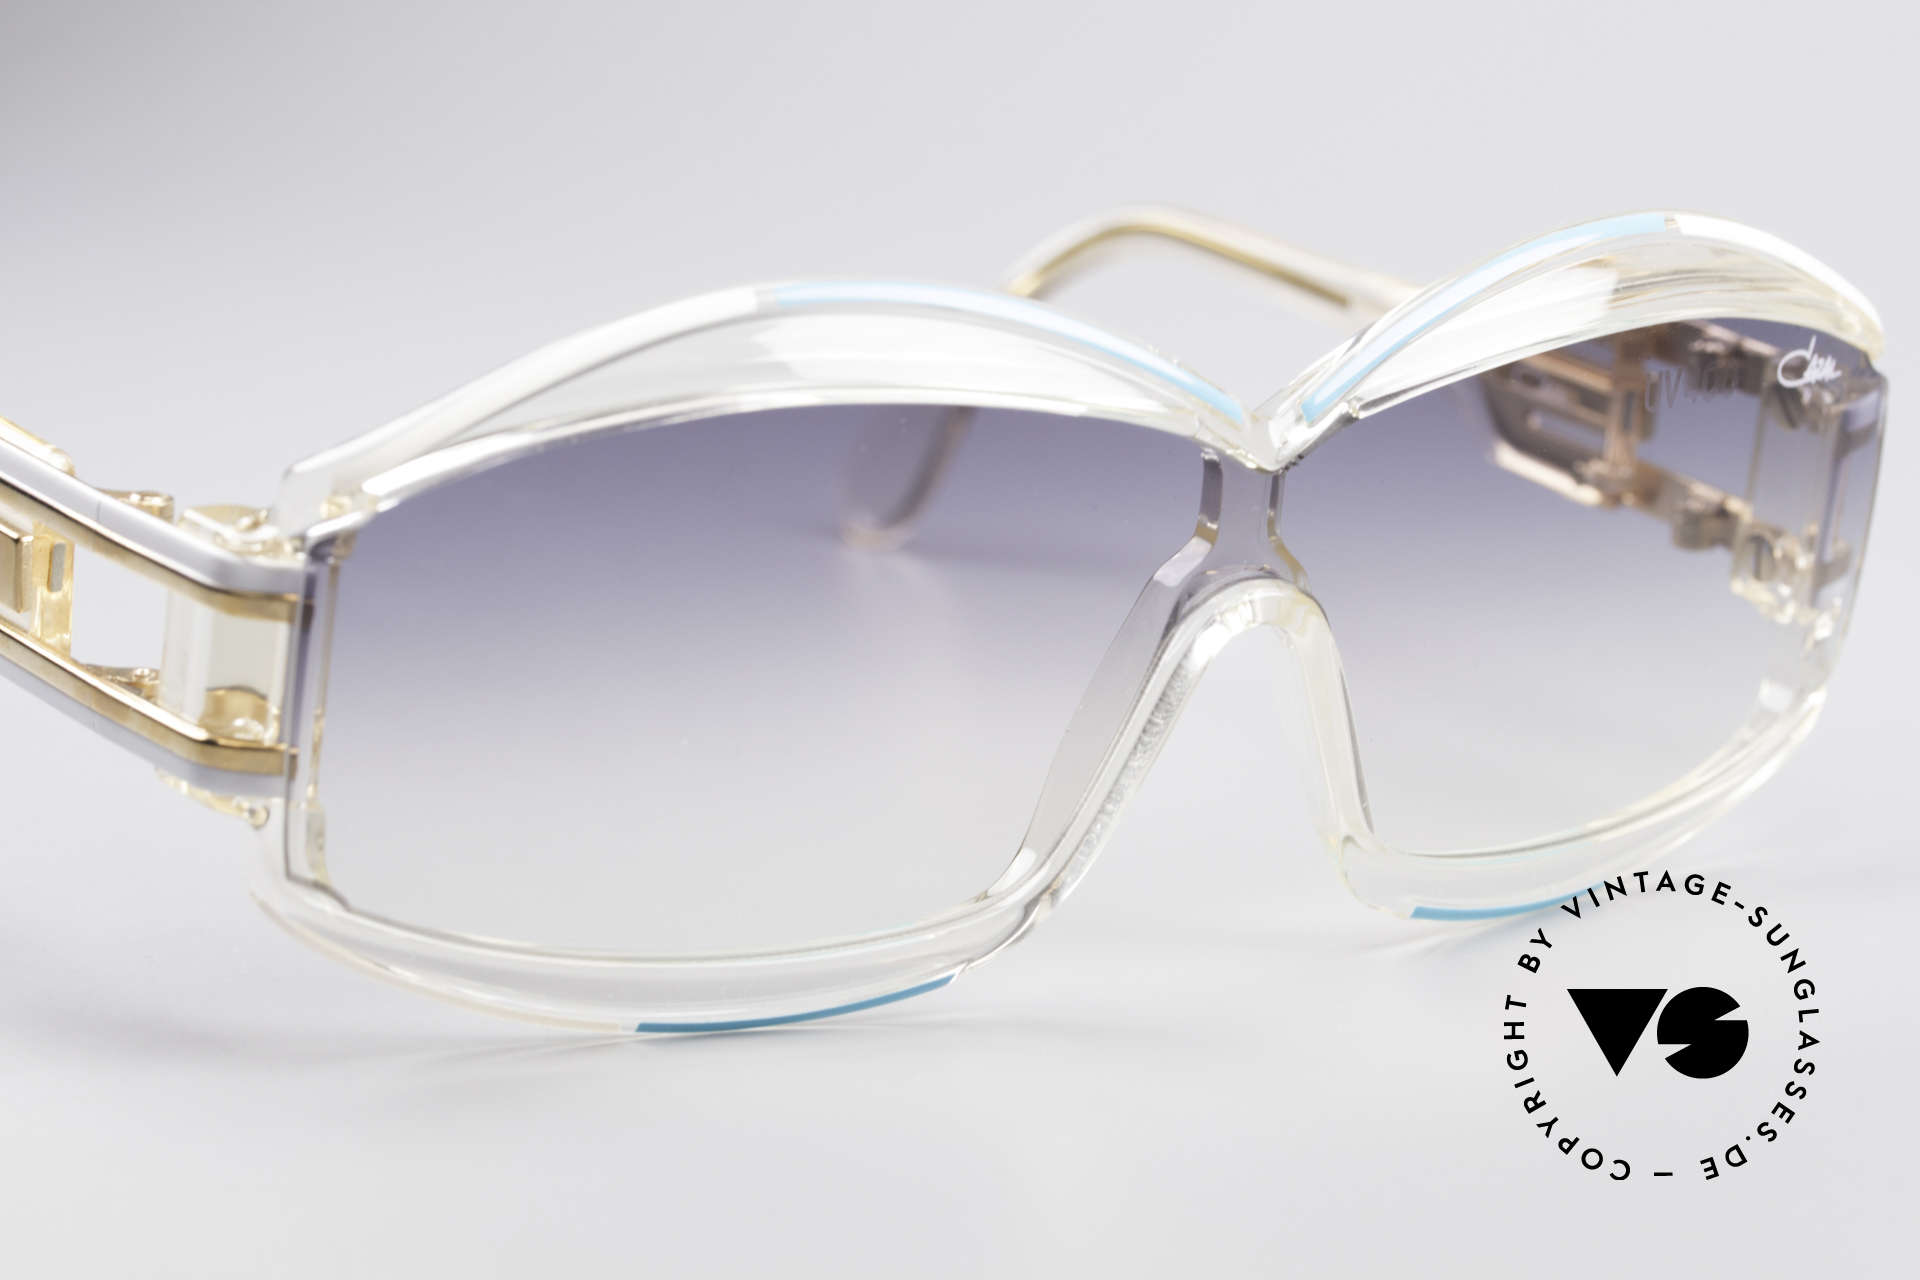 Cazal 857 True 80's Hip Hop Shades, new old stock (like all our rare vintage Cazal eyewear), Made for Men and Women